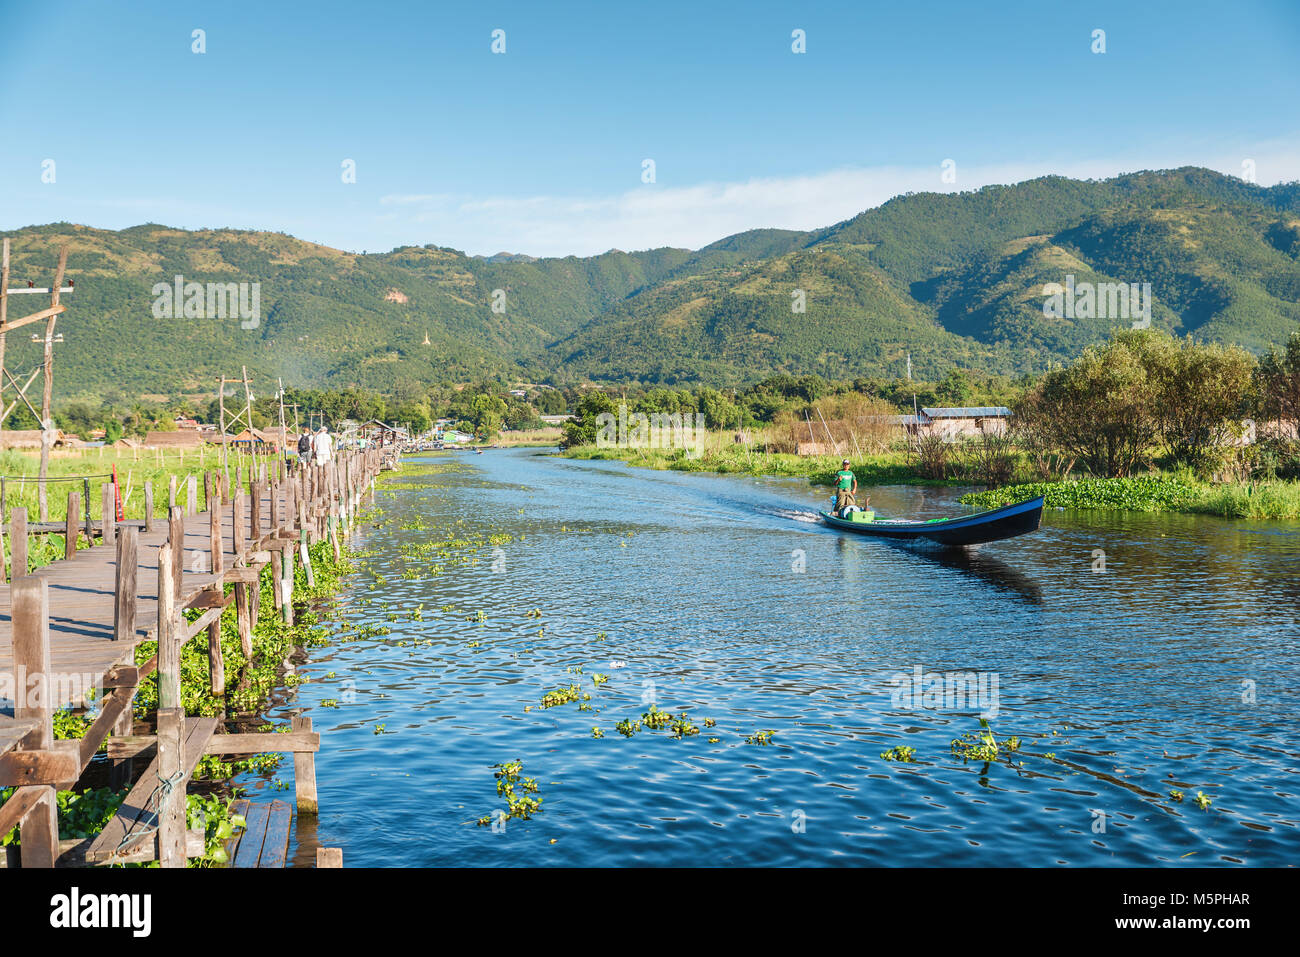 Inle Lake, Myanmar - Stock Image